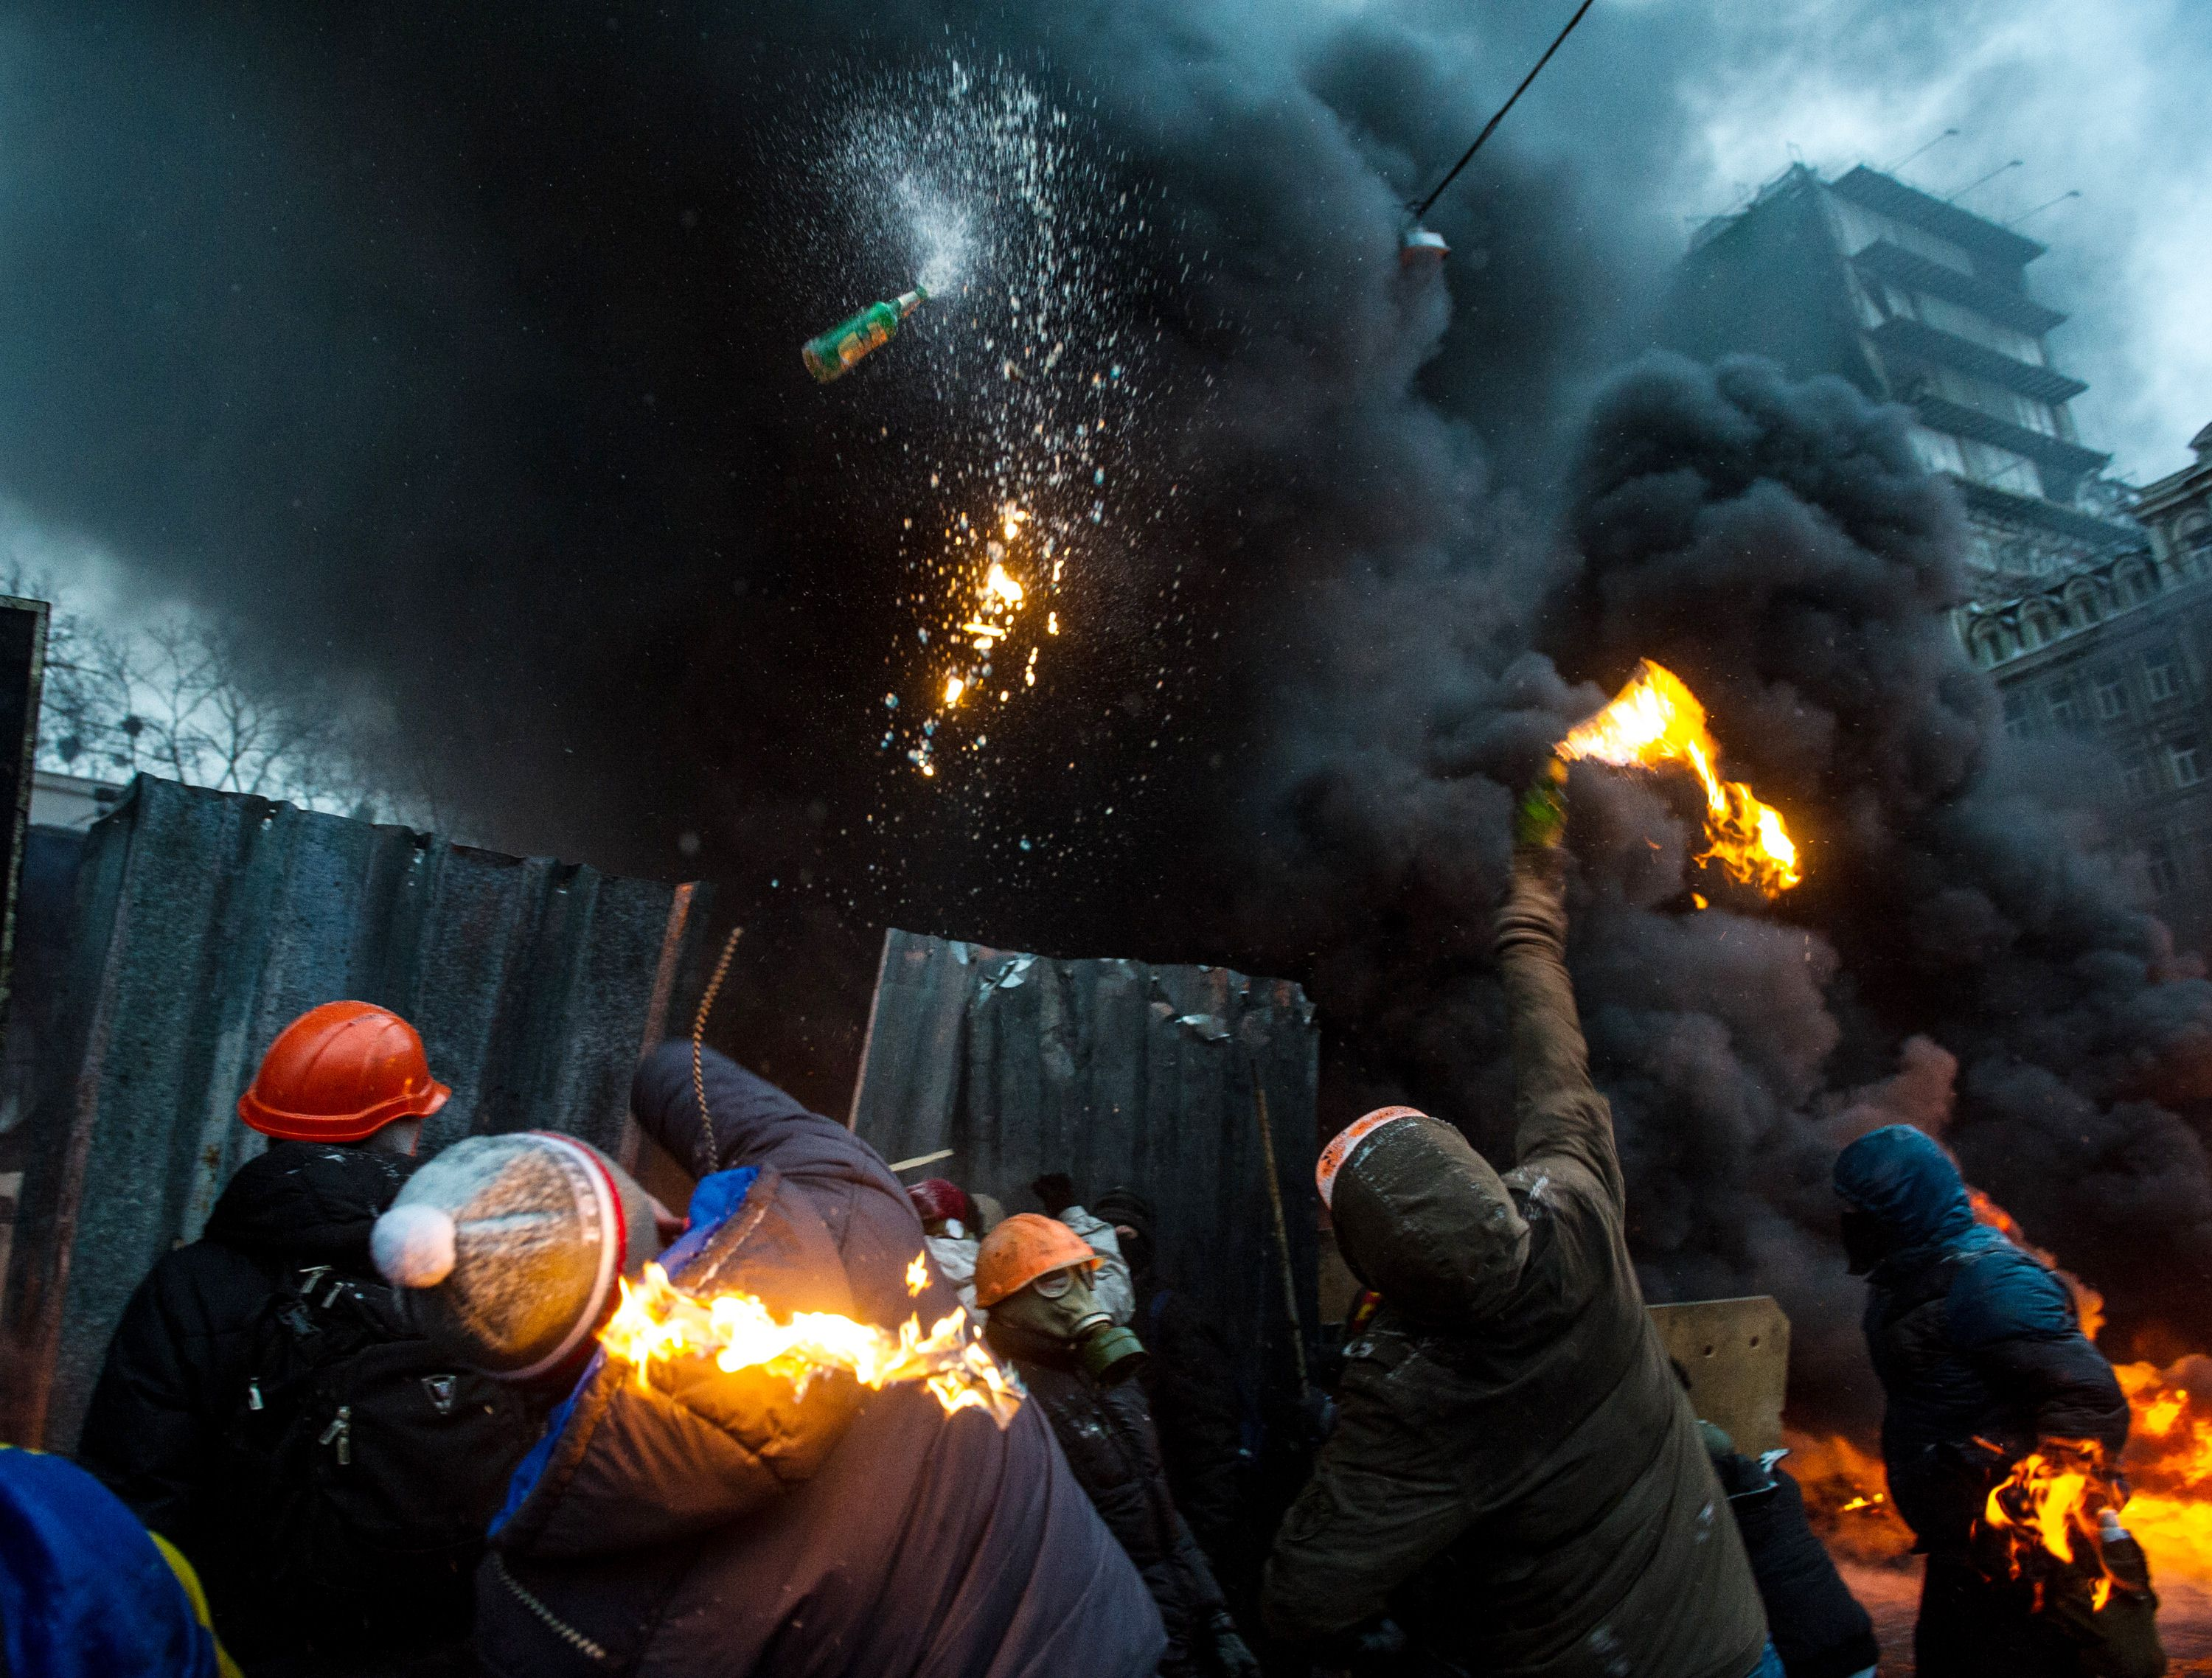 Protesters throw Molotov cocktails at police during clashes in the centre of Kiev on 22 January 2014 (AFP Photo)